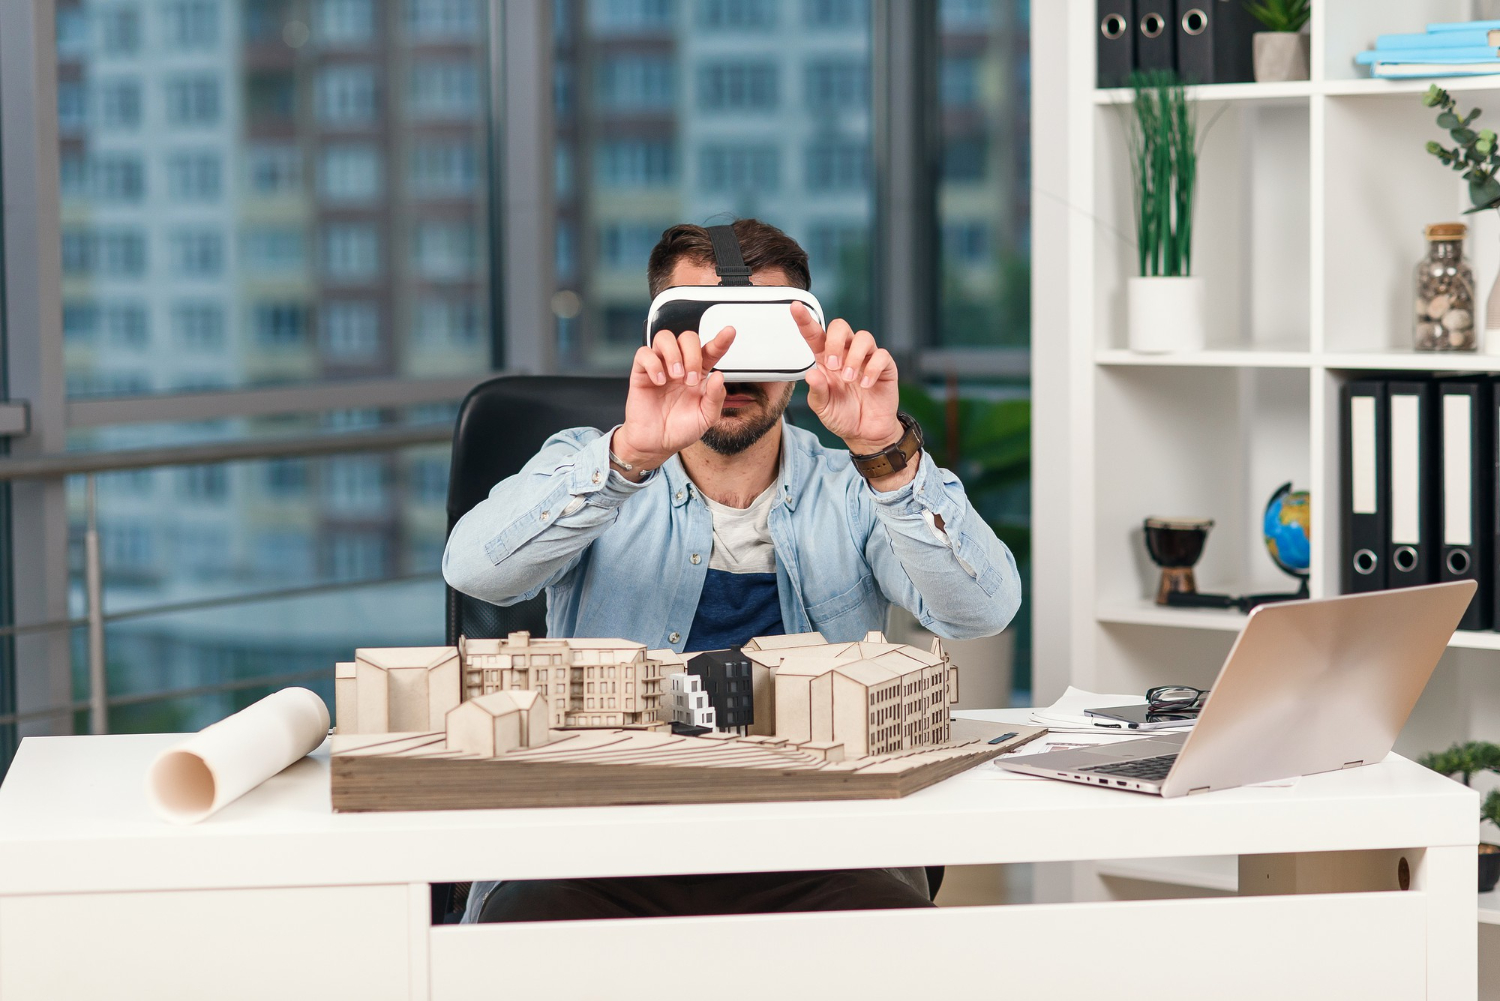 skilled-male-architect-reviewing-architectural-project-with-augmented-reality-glasses-design-bureau